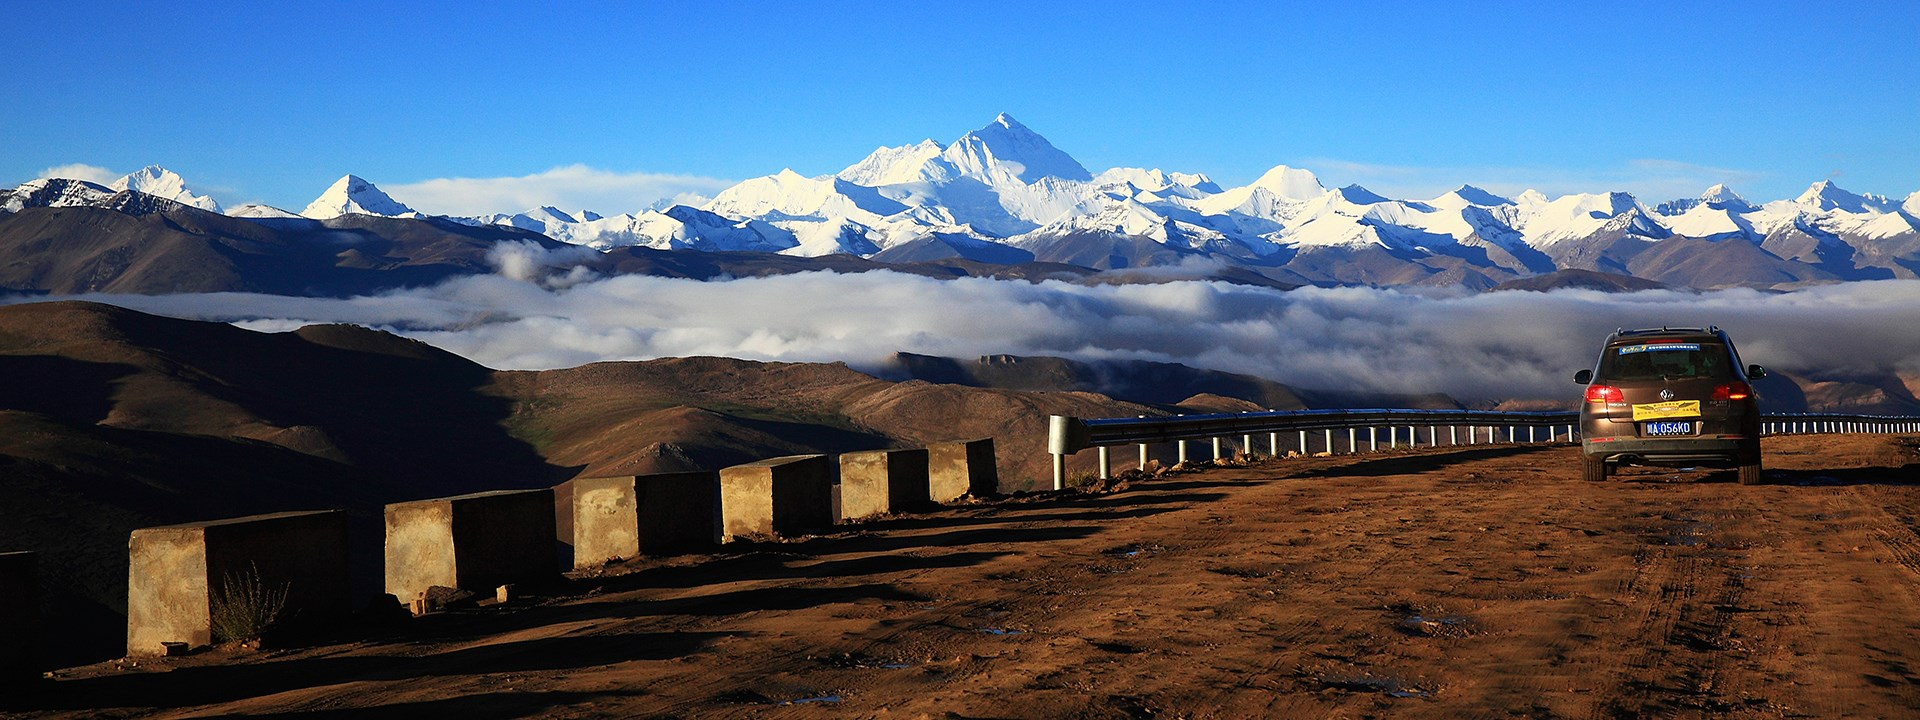 Overland Tour from Lhasa via Everest to Kathmandu